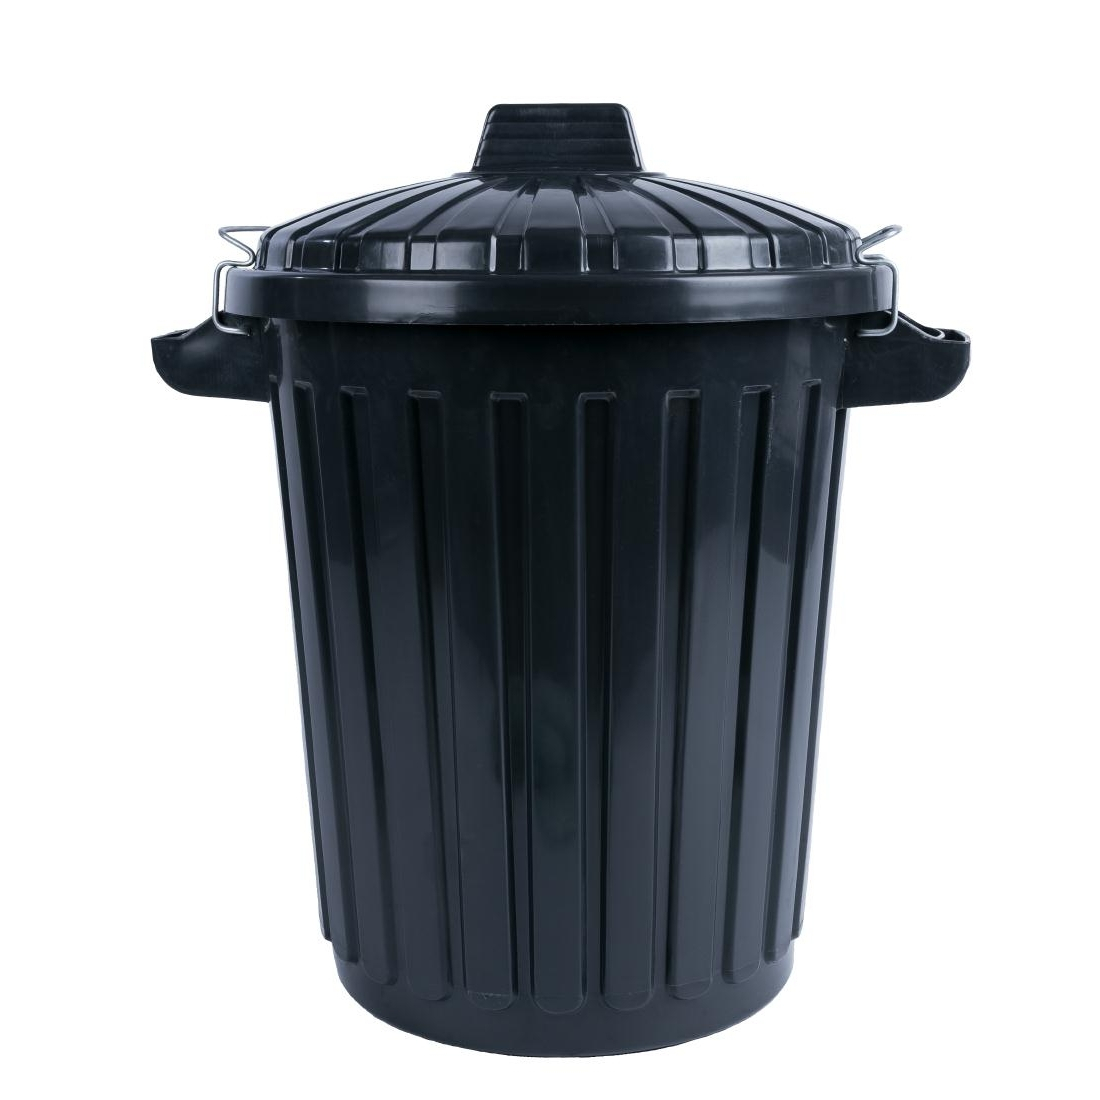 Curver Waste Bin with Lid